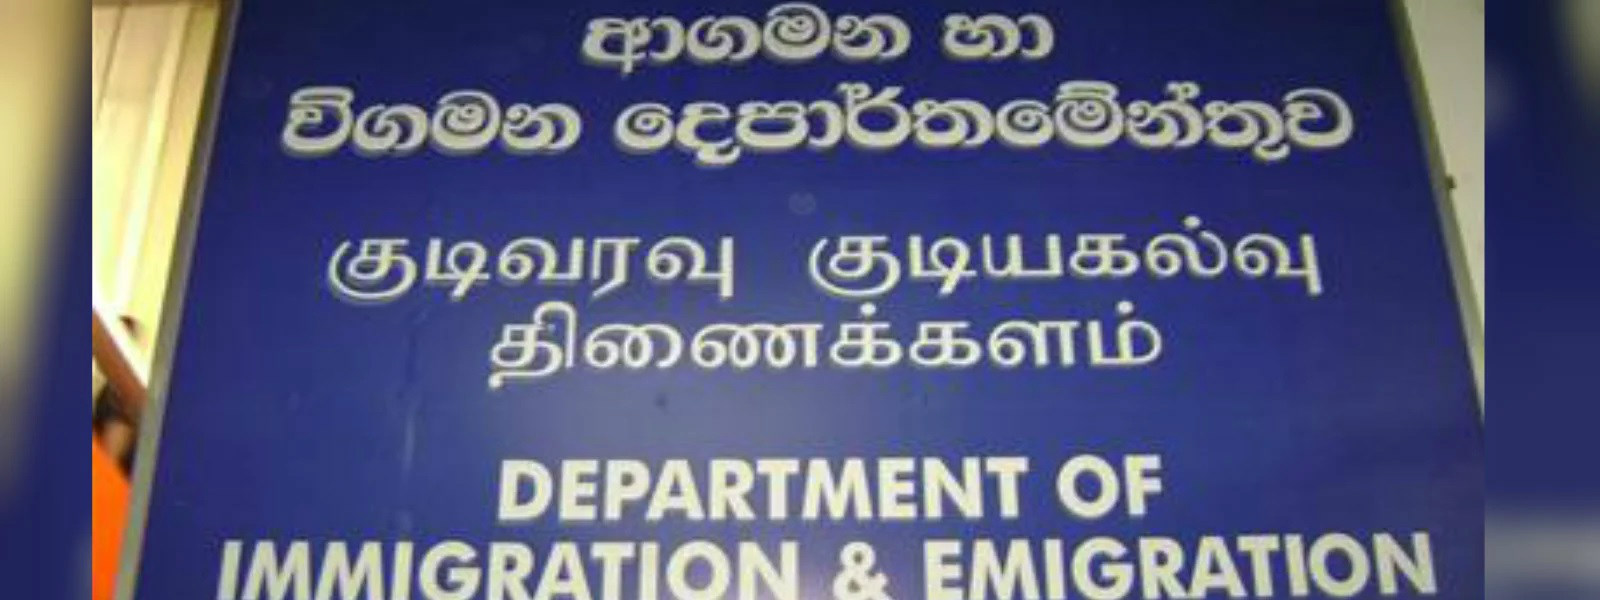 496 deported for violating immigration rules – Department of Immigration and Emigration